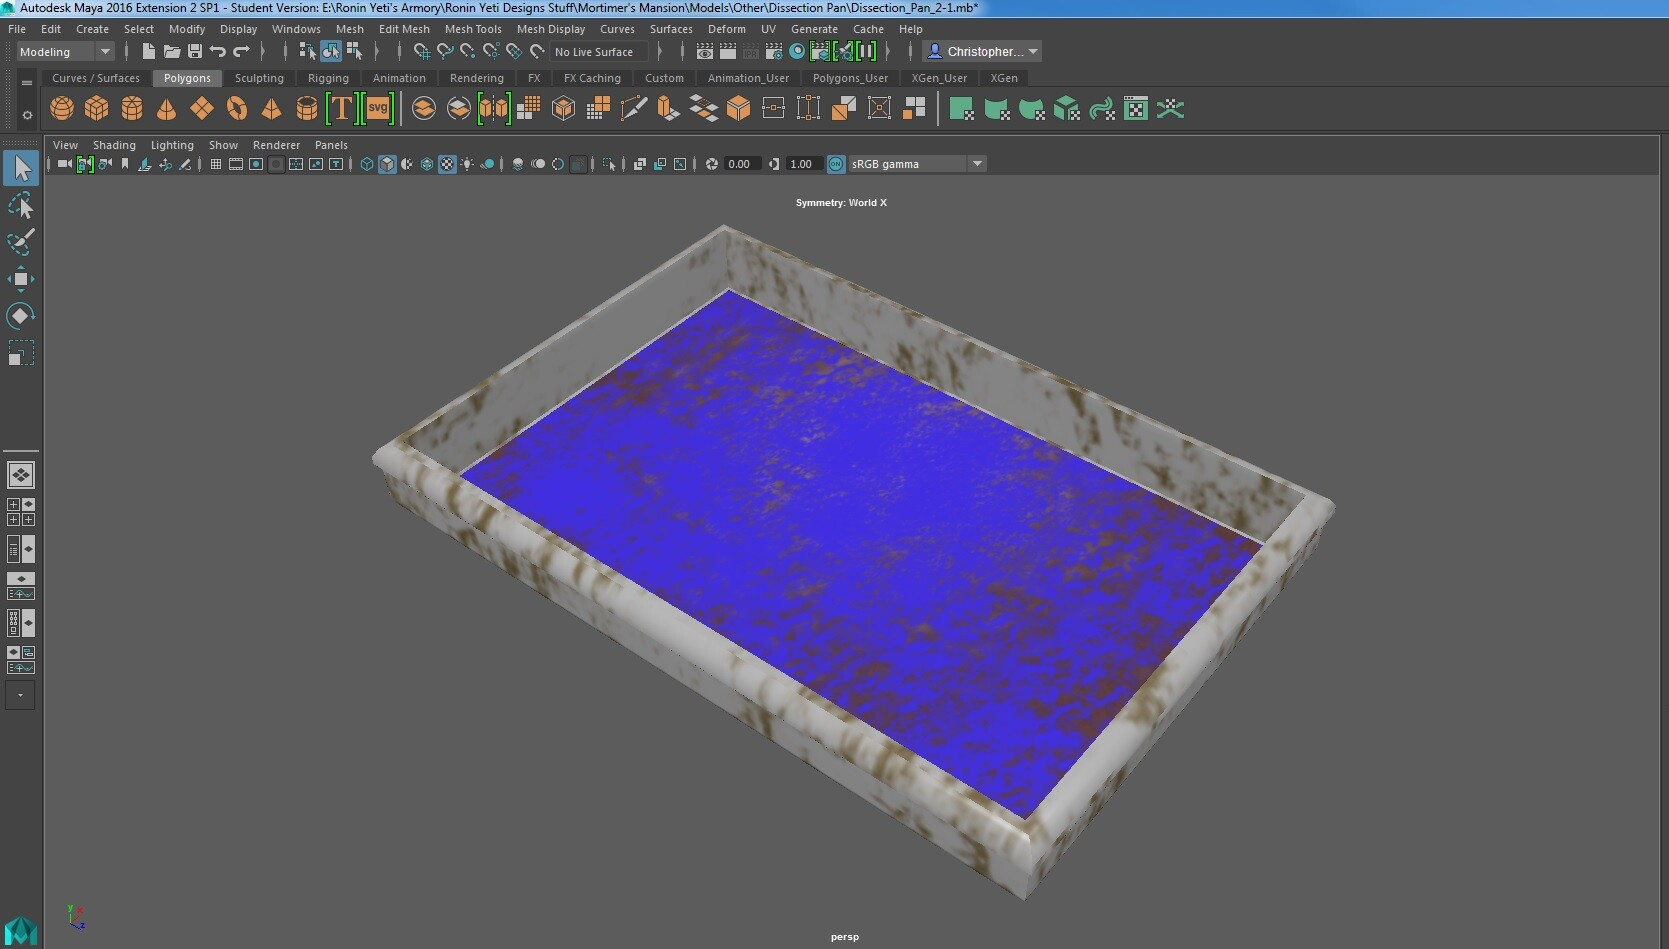 The final version for the dissection pan model